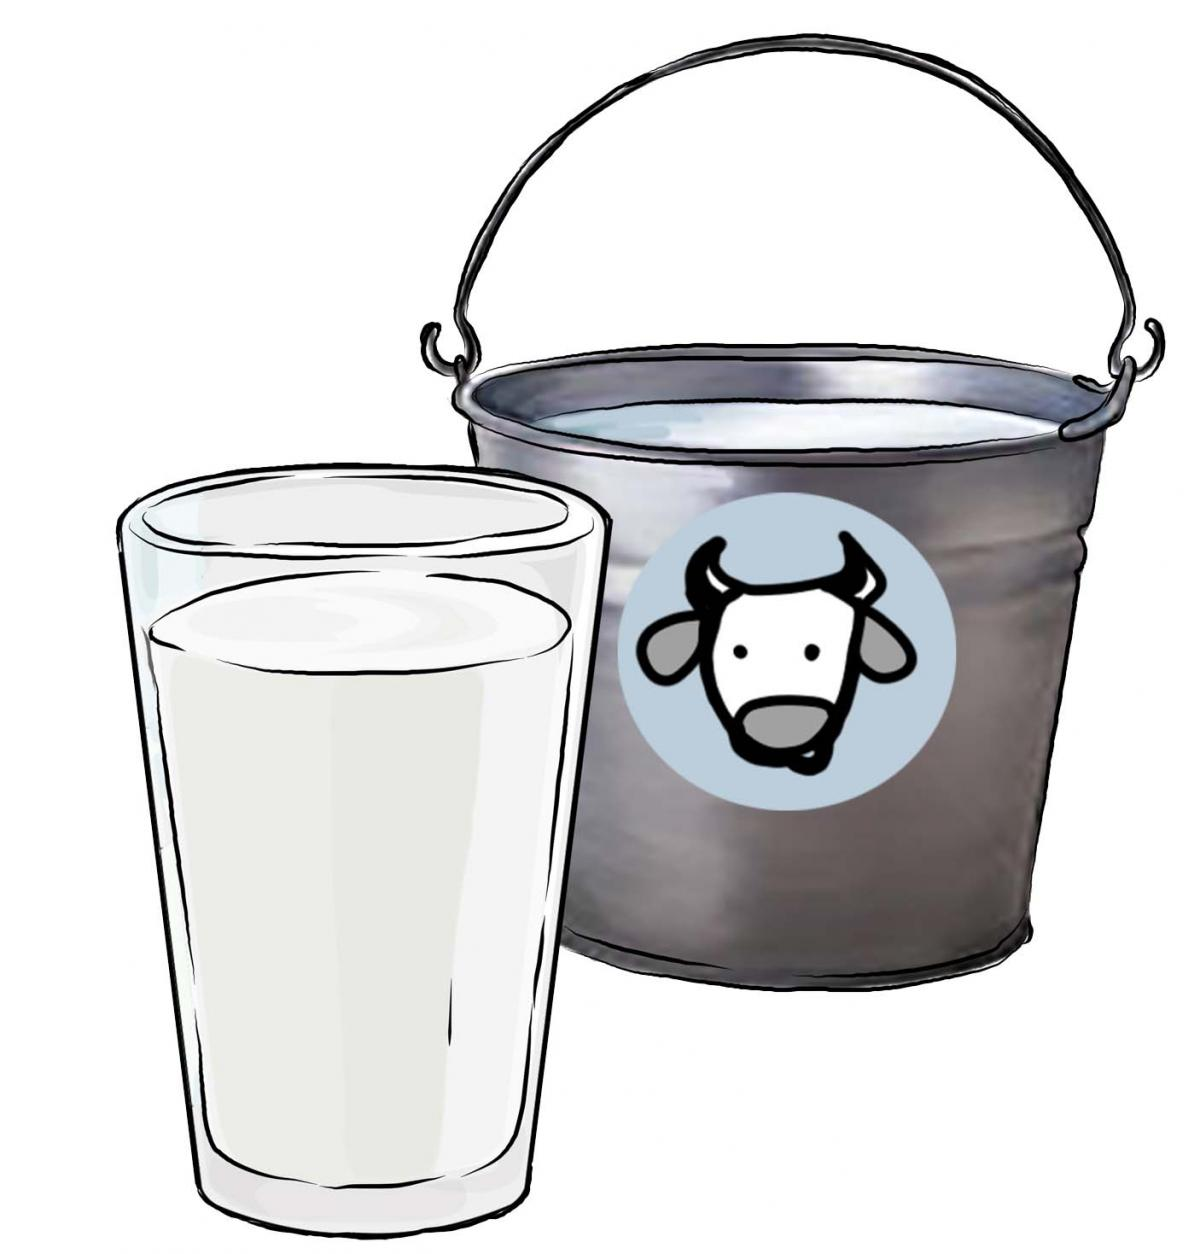 Milk bucket clipart banner transparent library Objects - Pail of milk - 02 - Non-country specific | IYCF ... banner transparent library